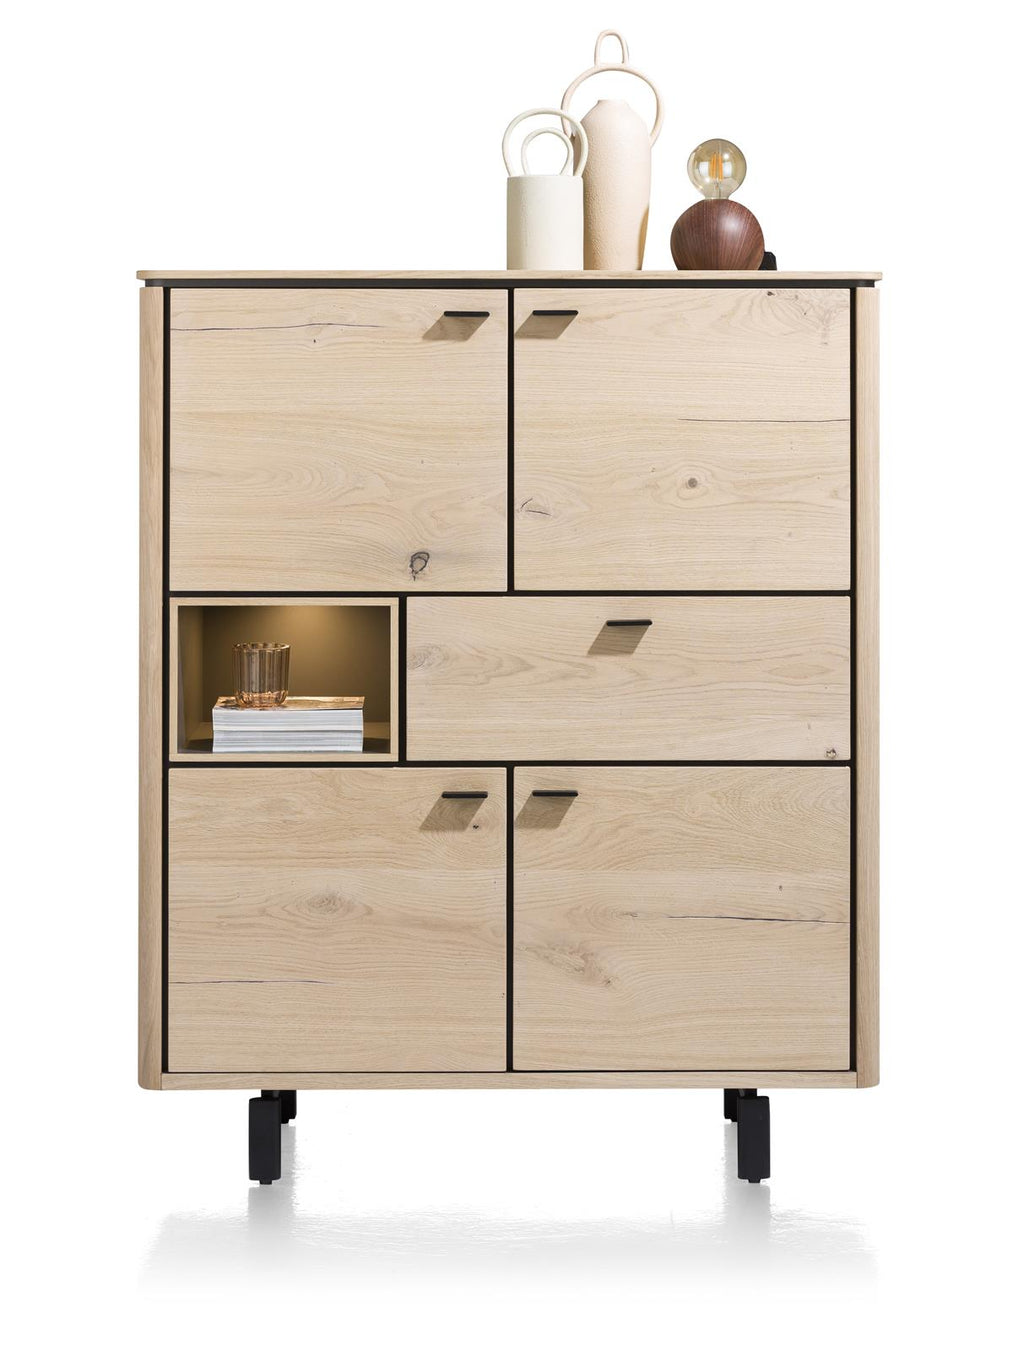 Livada Moreni Bespoke Highboard in Four Colours